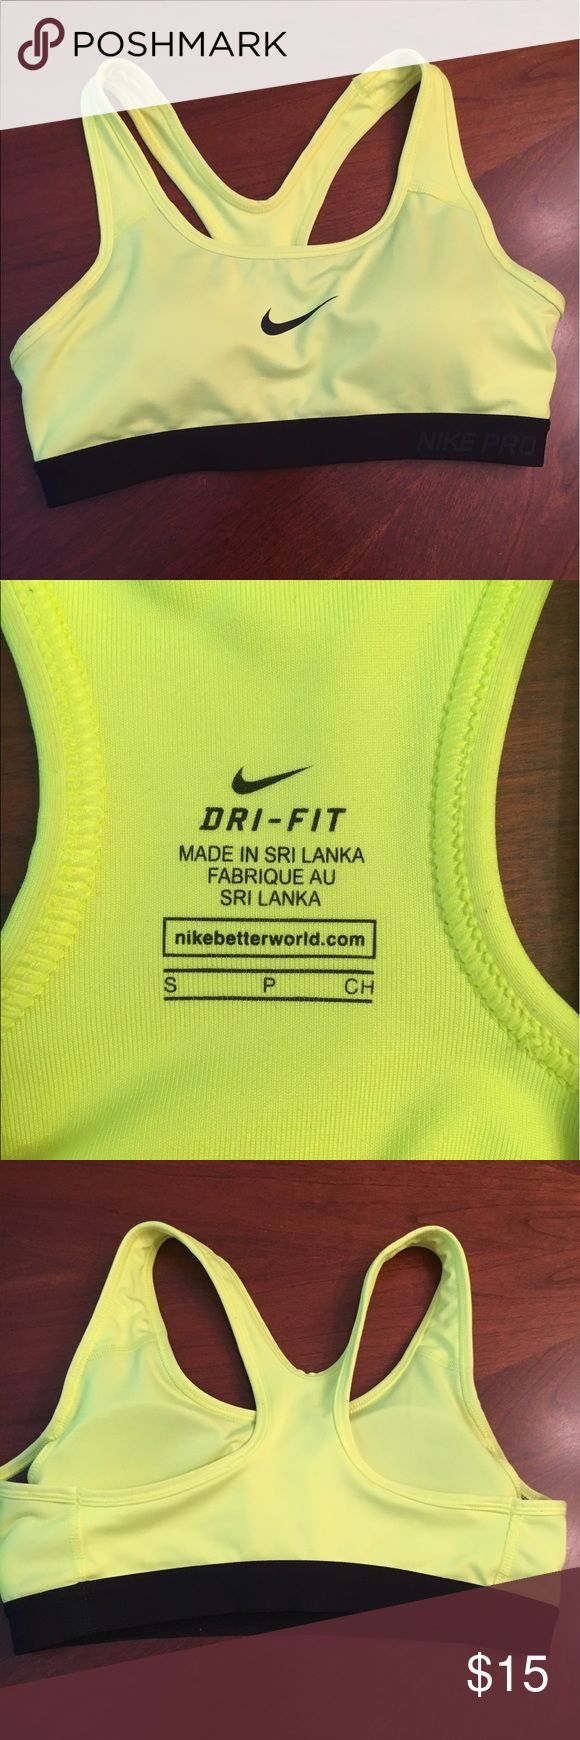 Nike sports bra EUC highlighter yellow sports bra with pads. Worn once. ⚜️I love receiving offers through the offer button! ⚜️ Nike Intimates & Sleepwear Bras